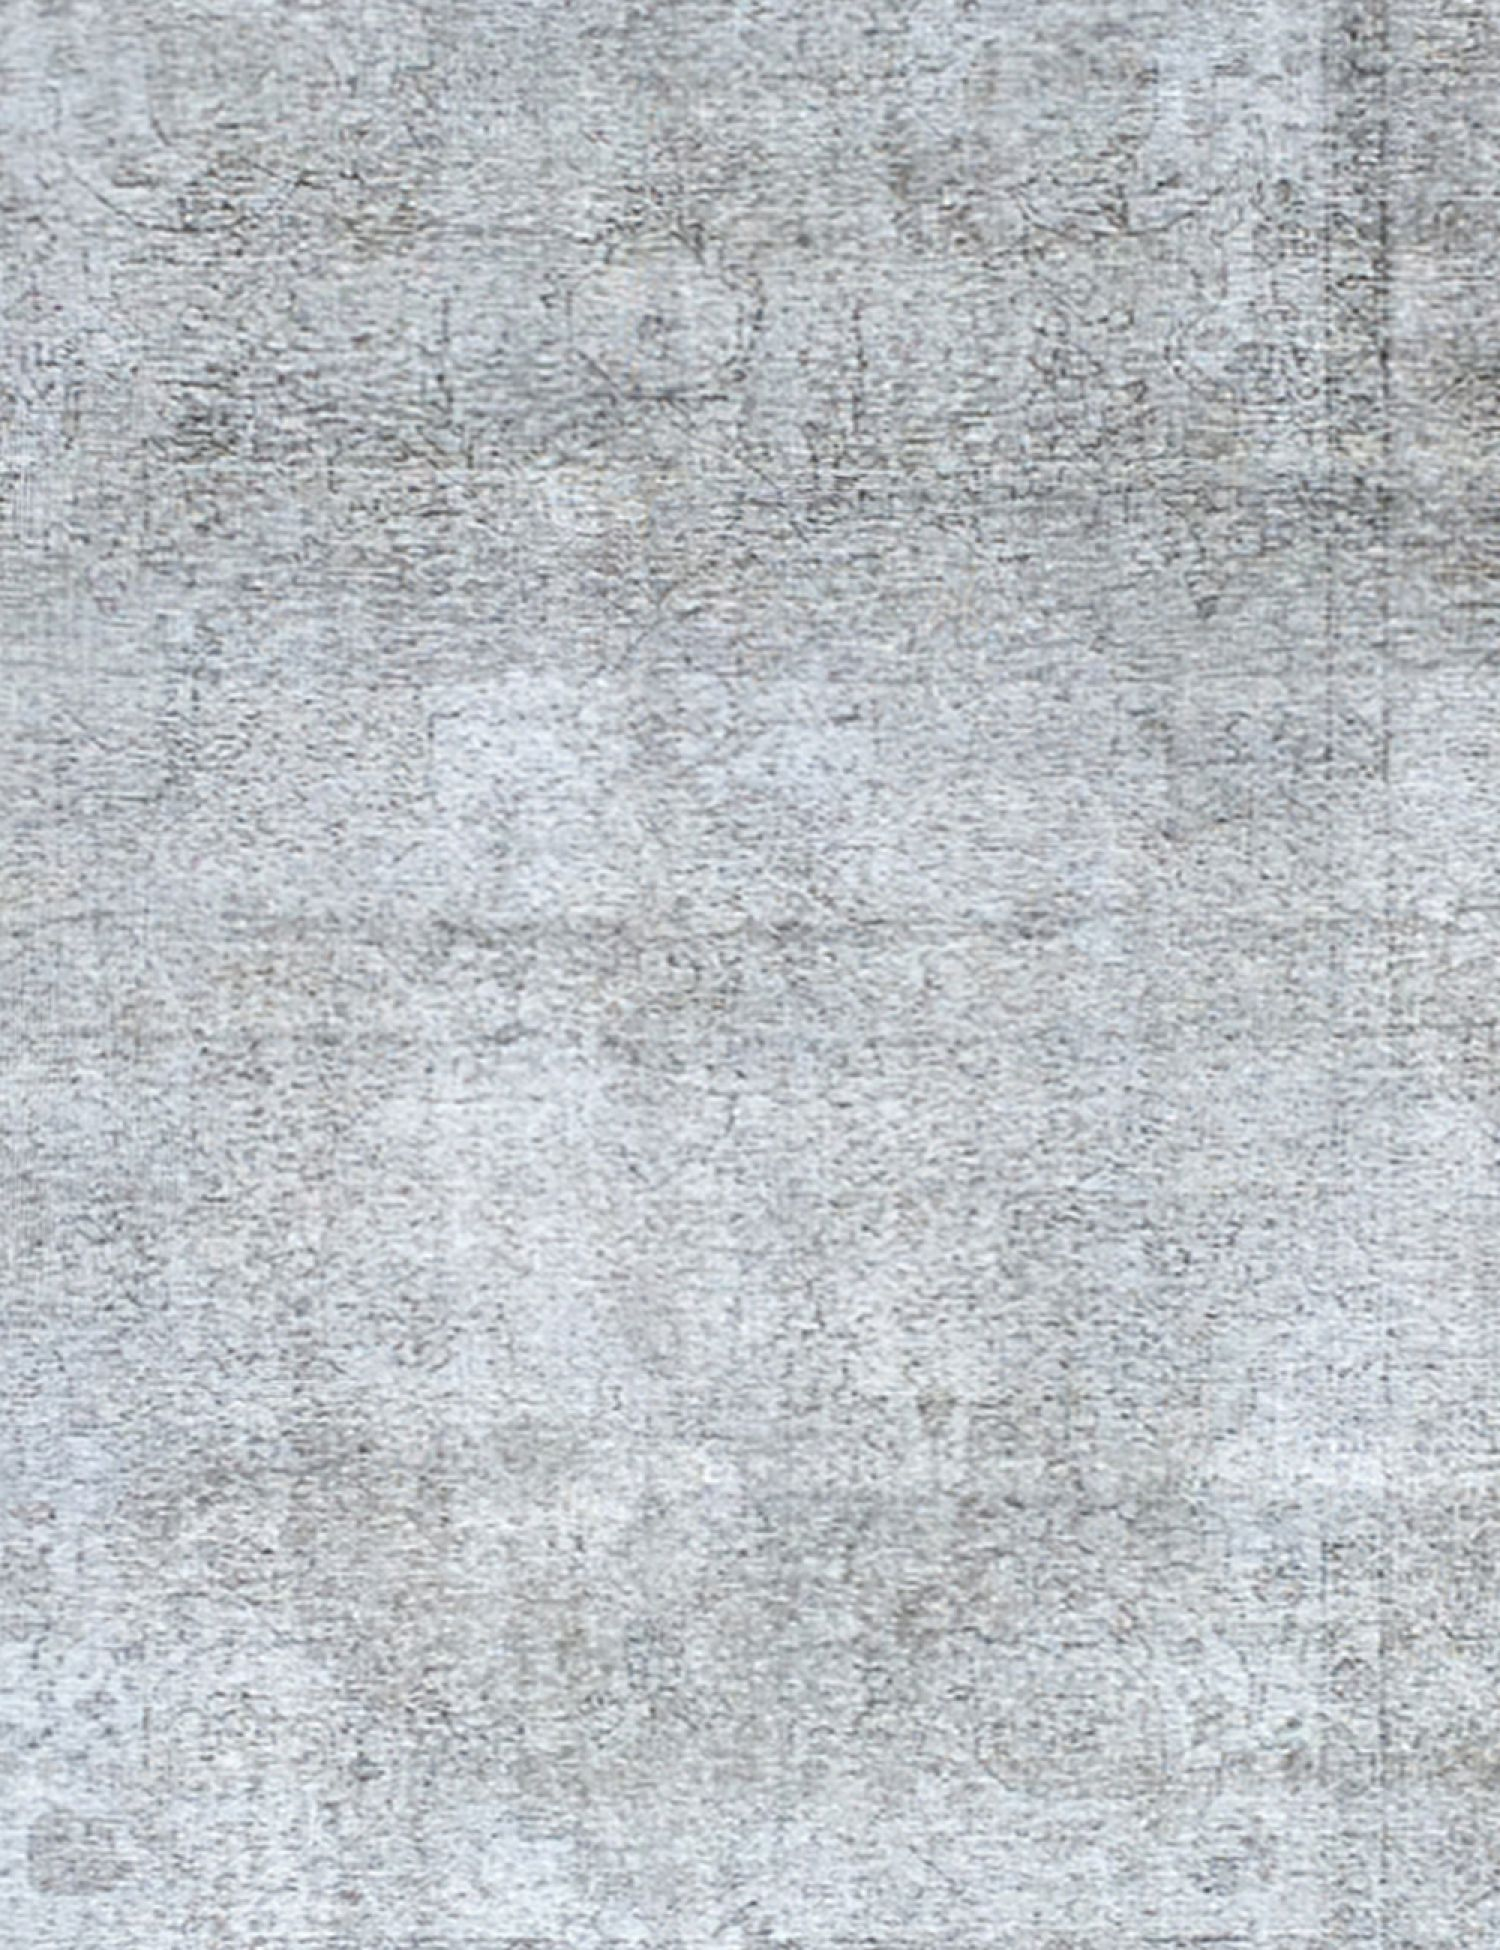 Vintage Carpet  grey <br/>279 x 197 cm